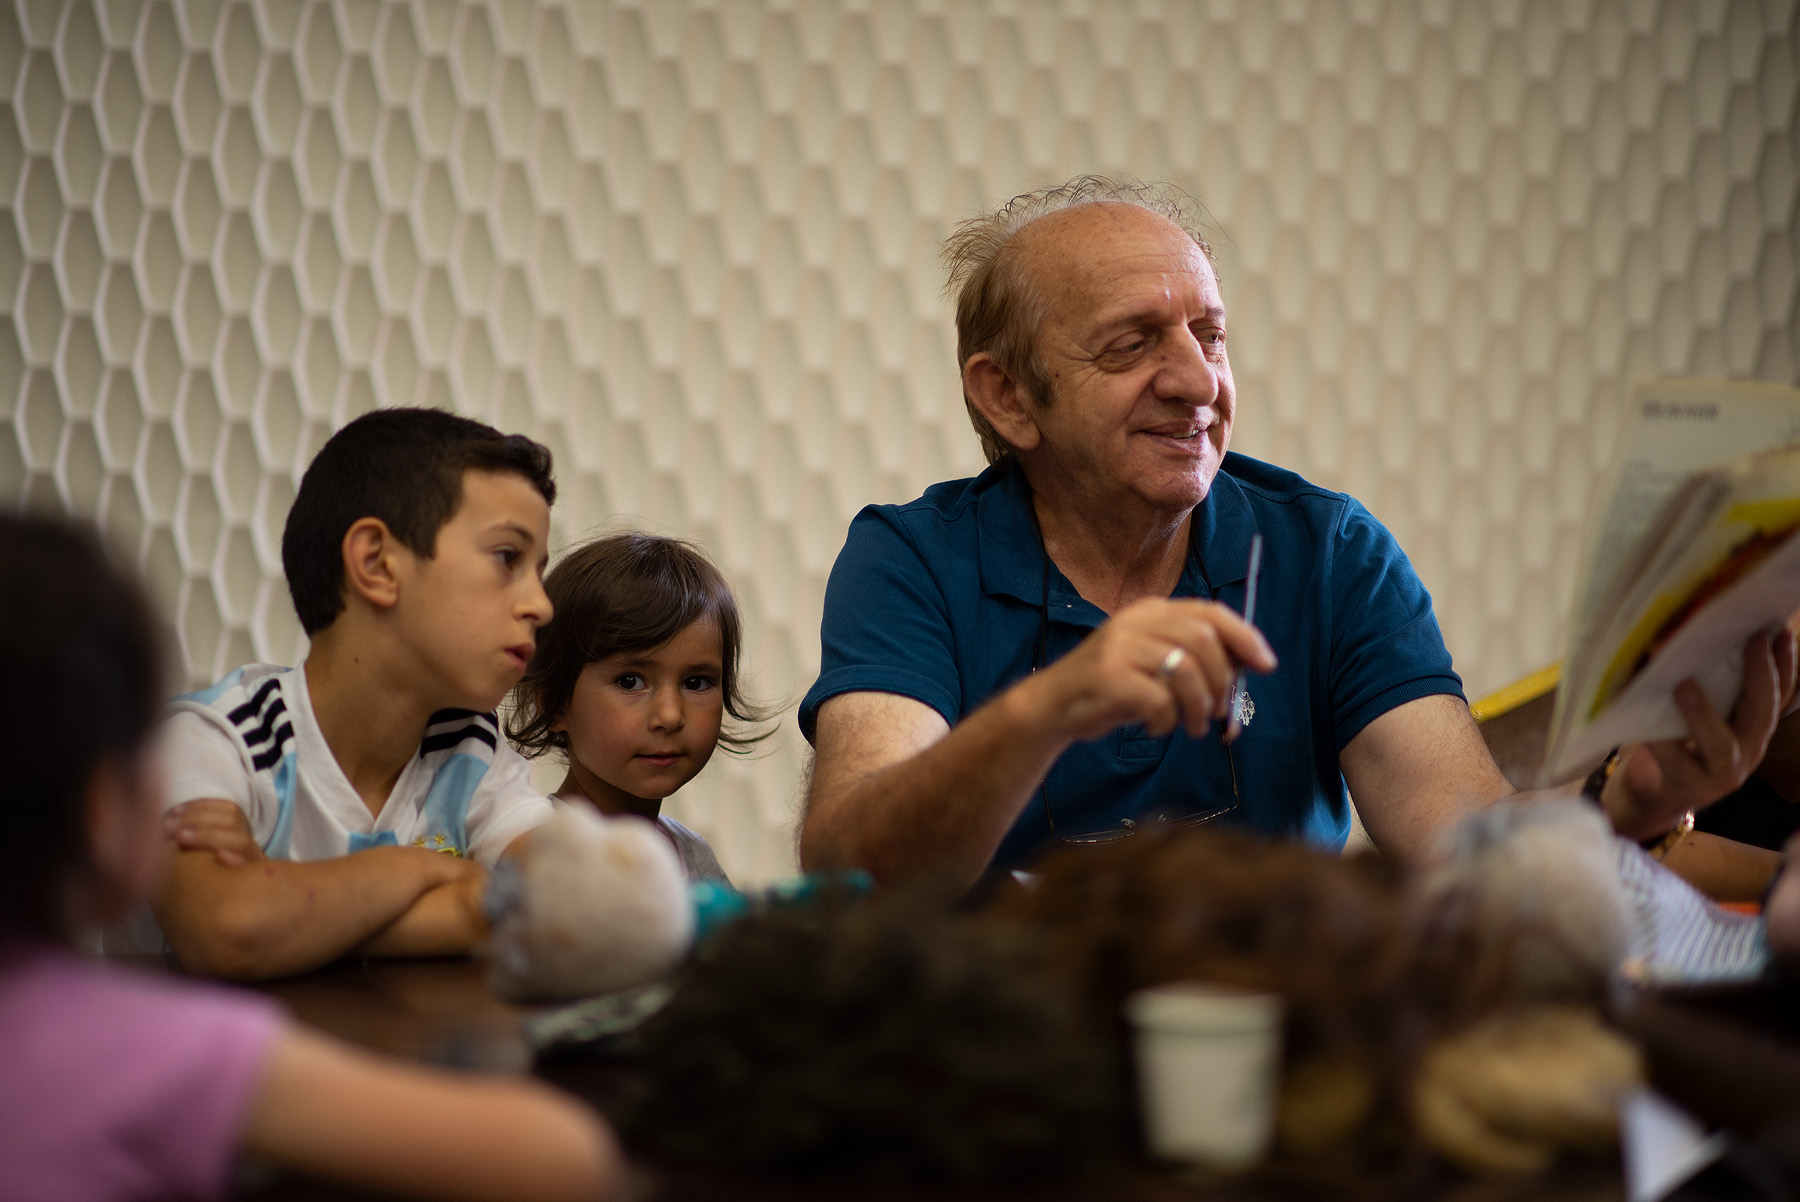 Children with an actor during drama therapy.